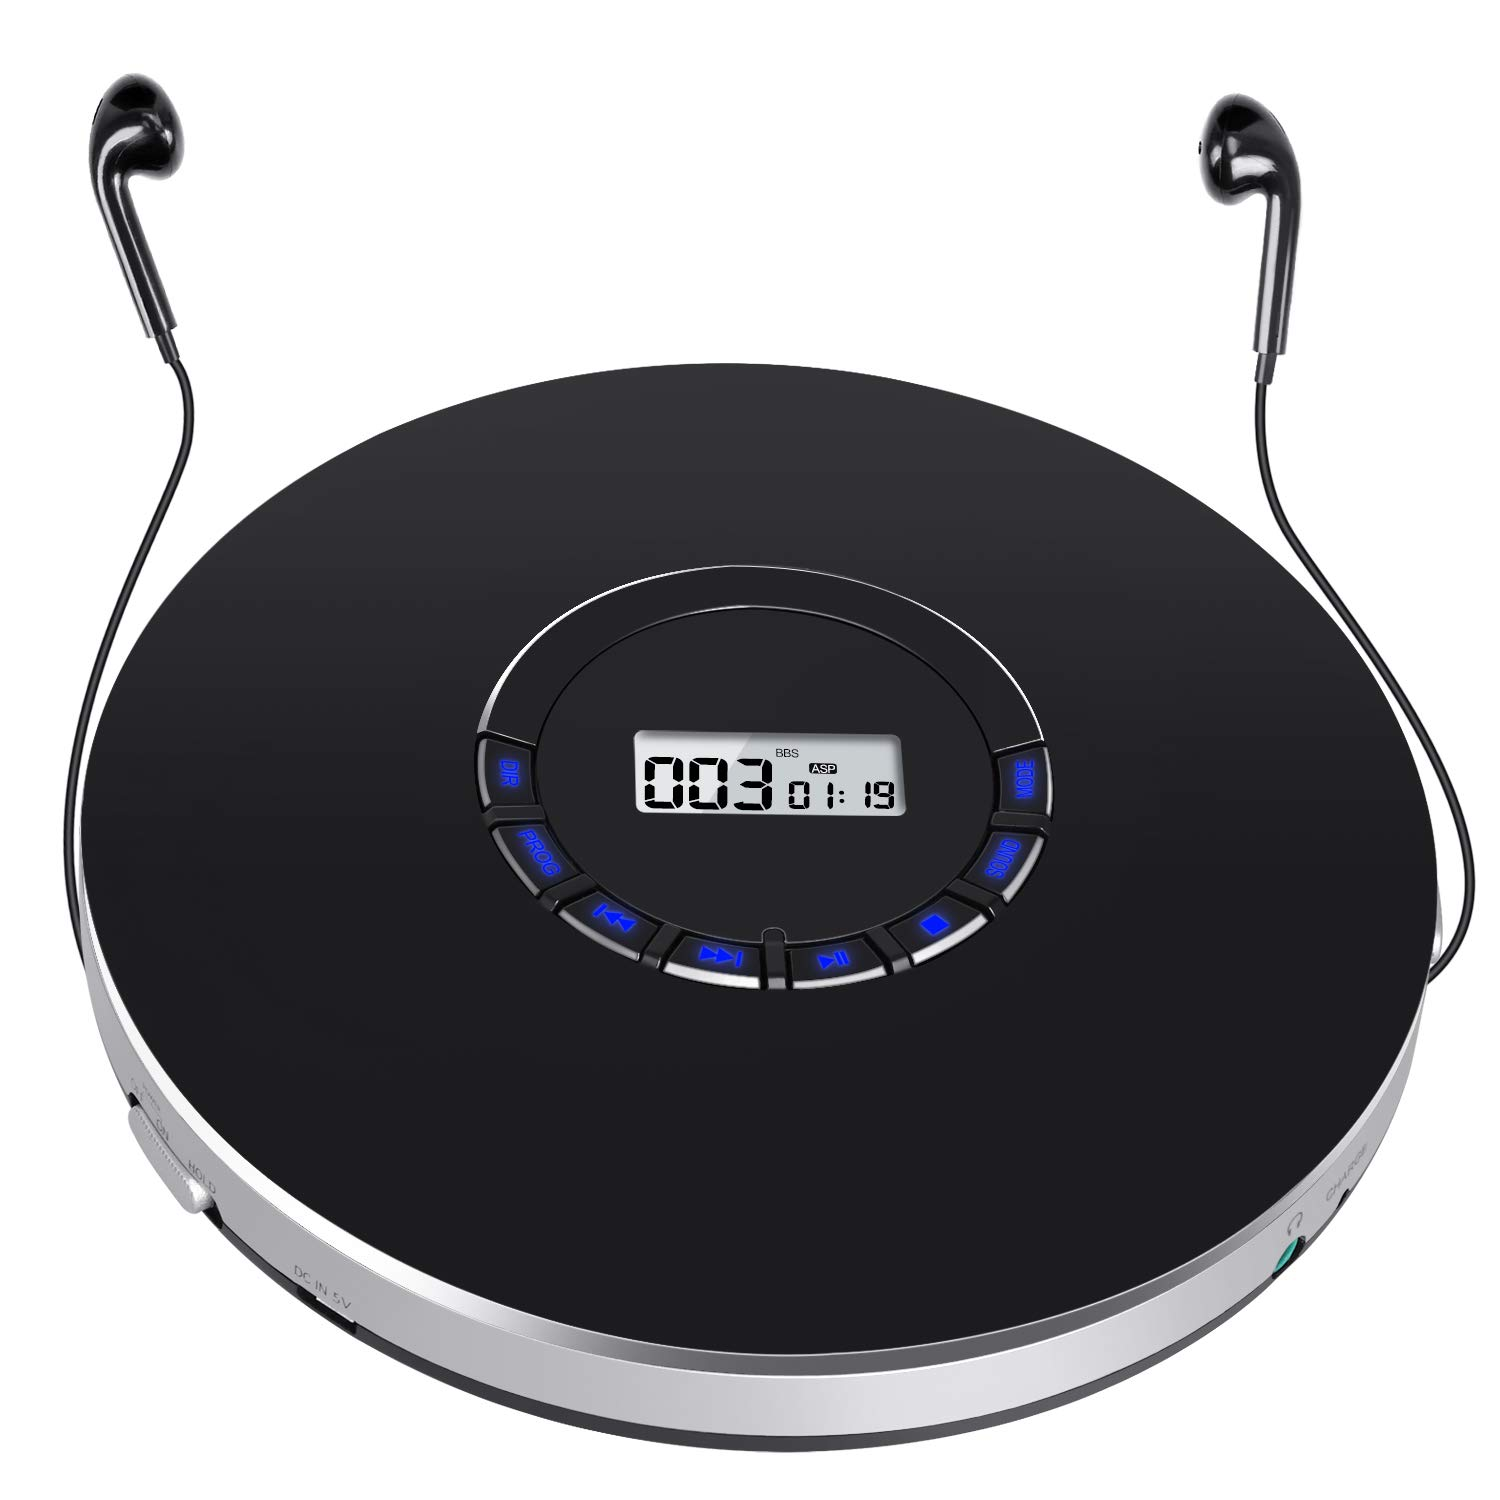 Rechargeable Portable CD Player, Small CD Player for Car, Compact Personal CD Player with LED Backlit Display, 12 Hours Playing Time, Anti-Skip, Shockproof and 3.5mm AUX Cable